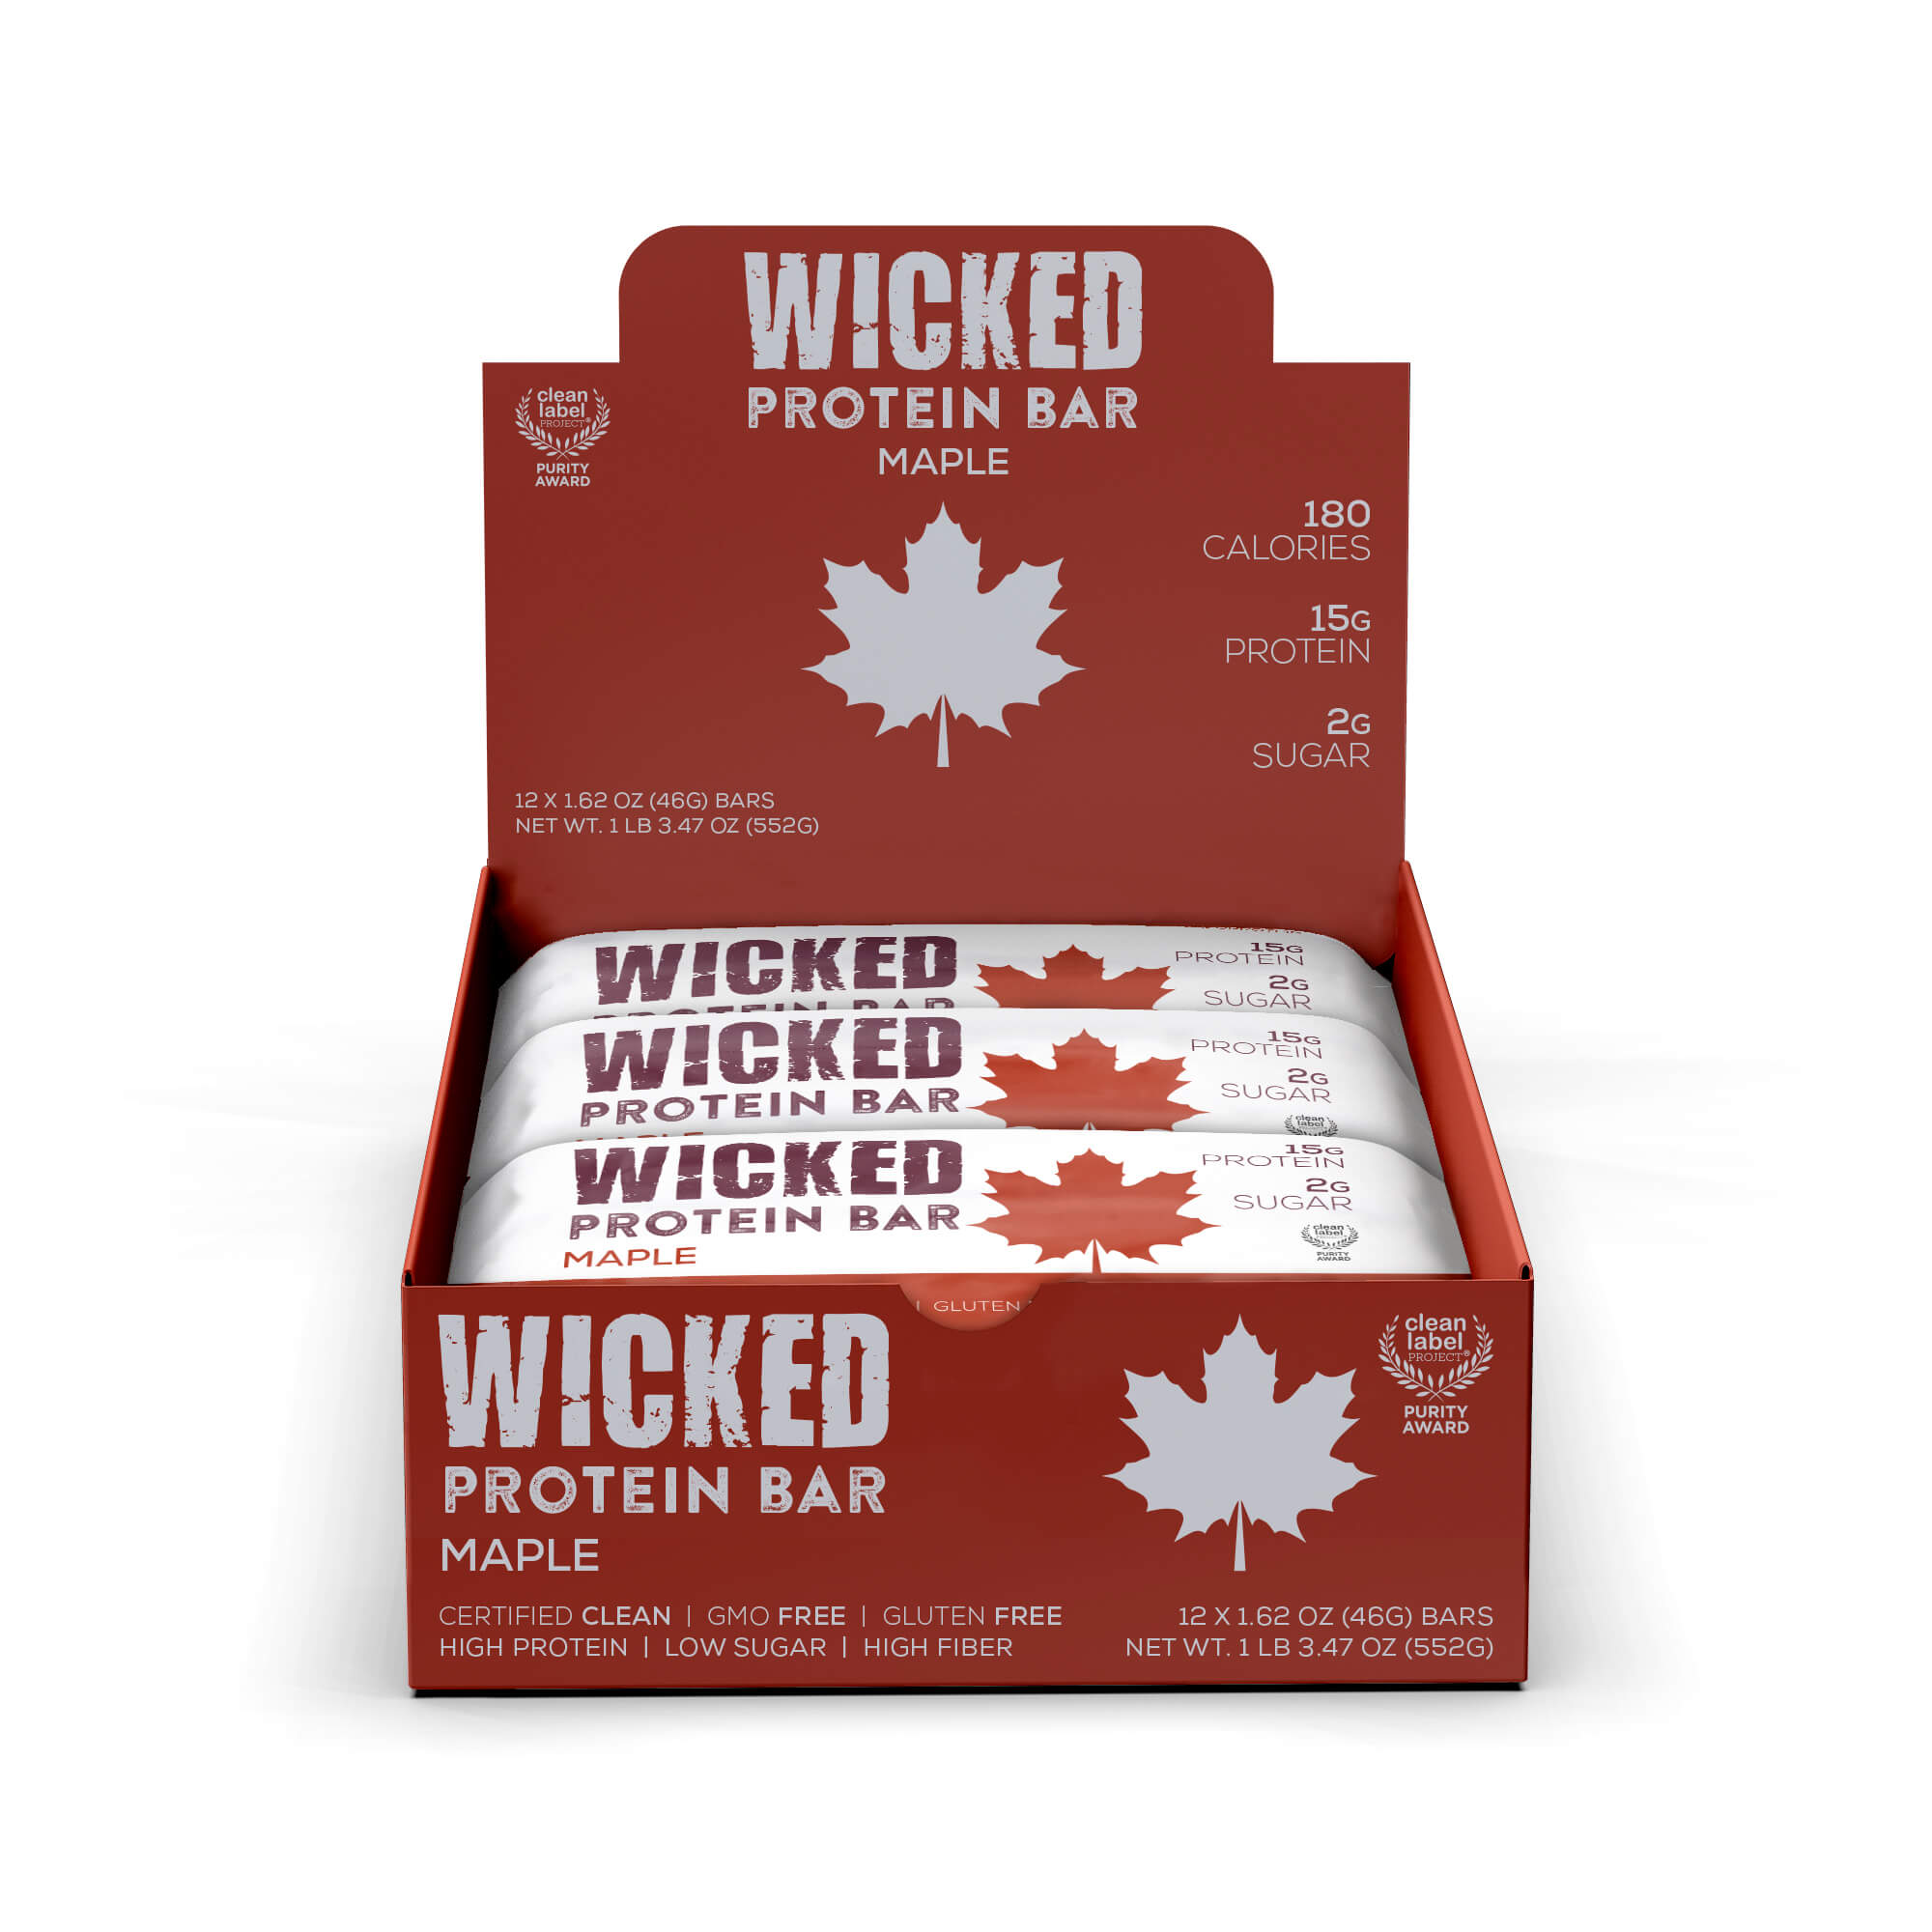 WICKED Maple Protein Bars (12 Bars/Box) - WICKED Protein Bars